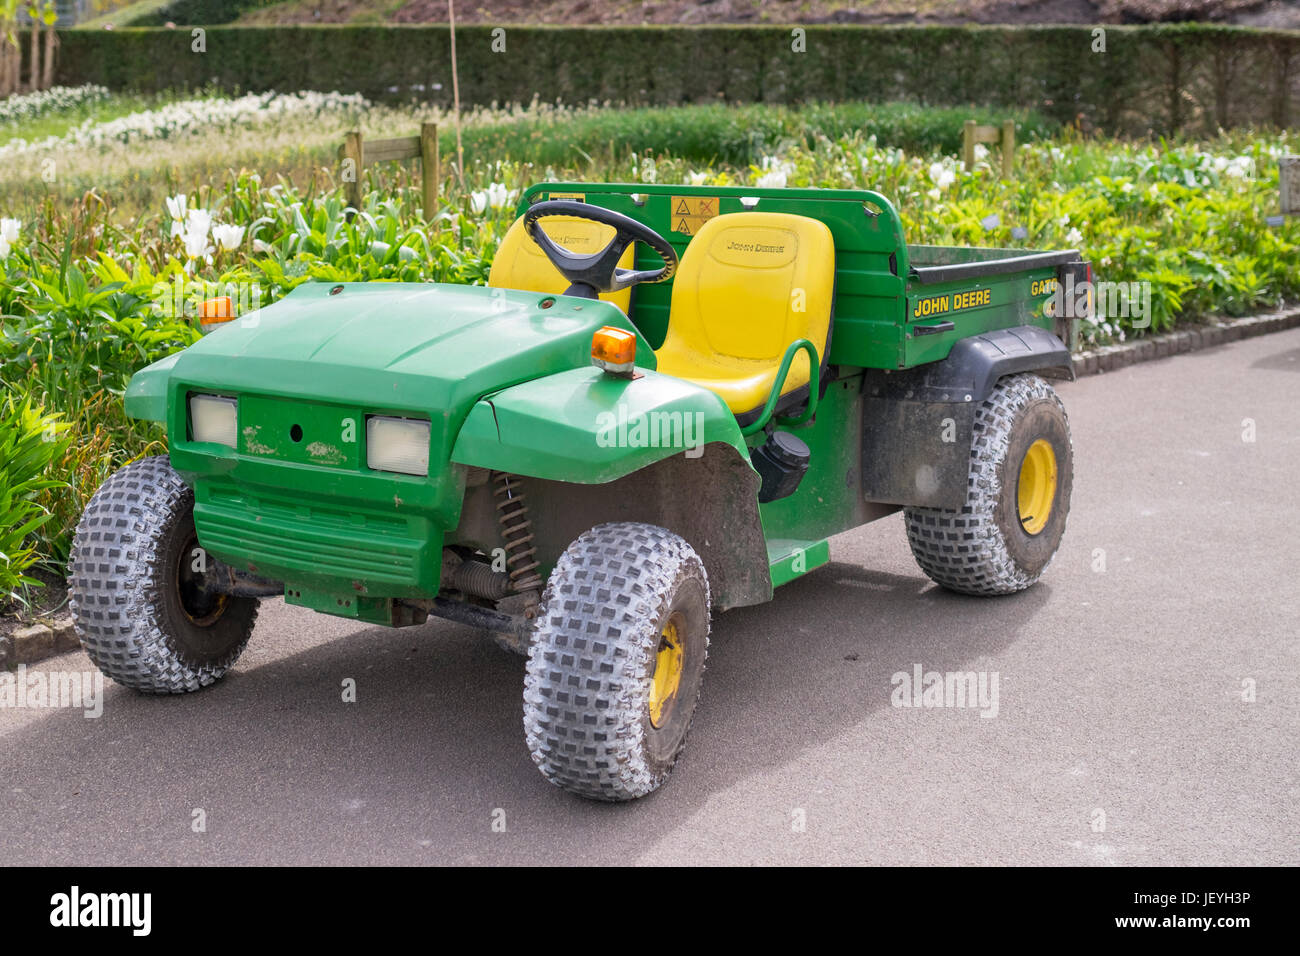 john deere gator 4x2 banque d'images, photo stock: 146894266 - alamy